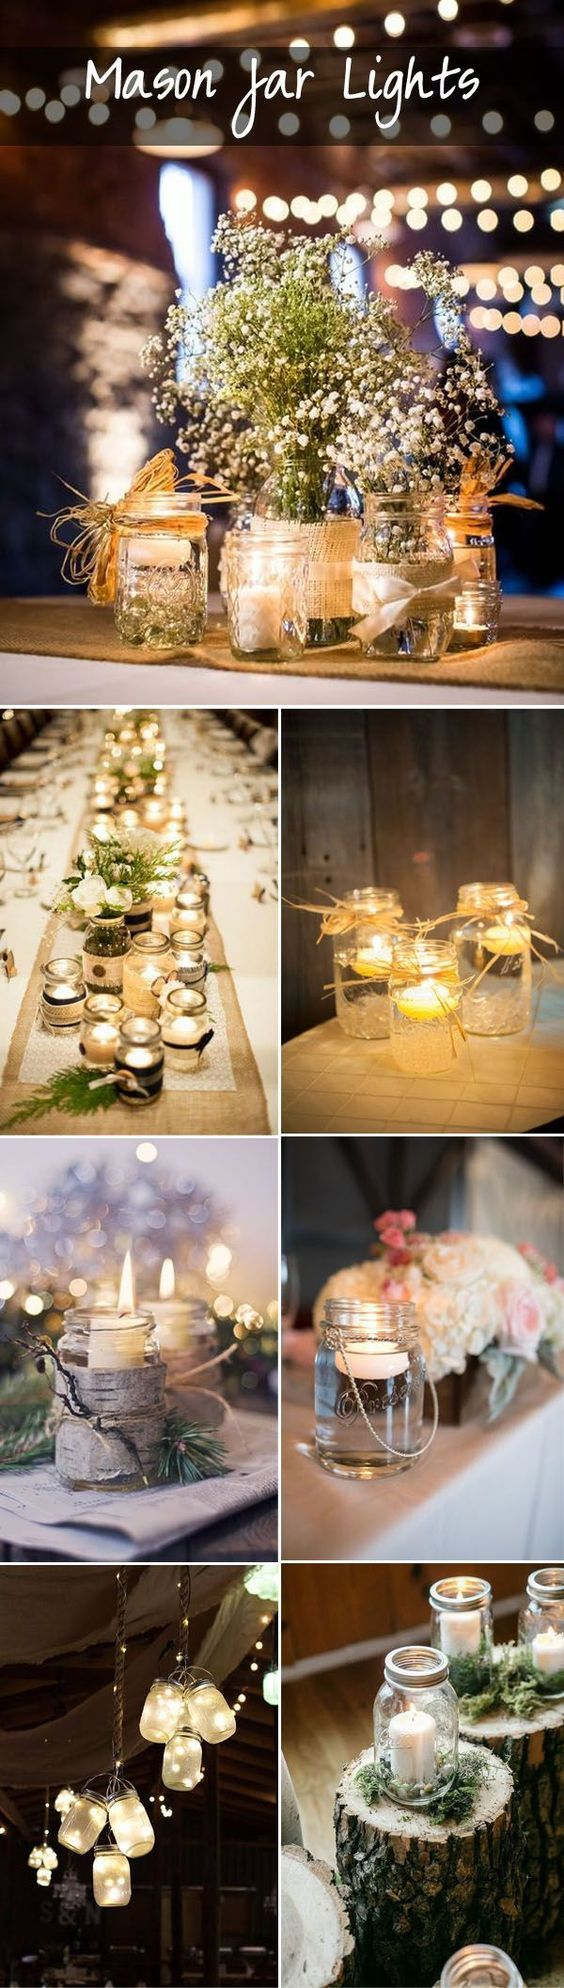 gorgeous DIY rustic mason jar lights ideas for weddings